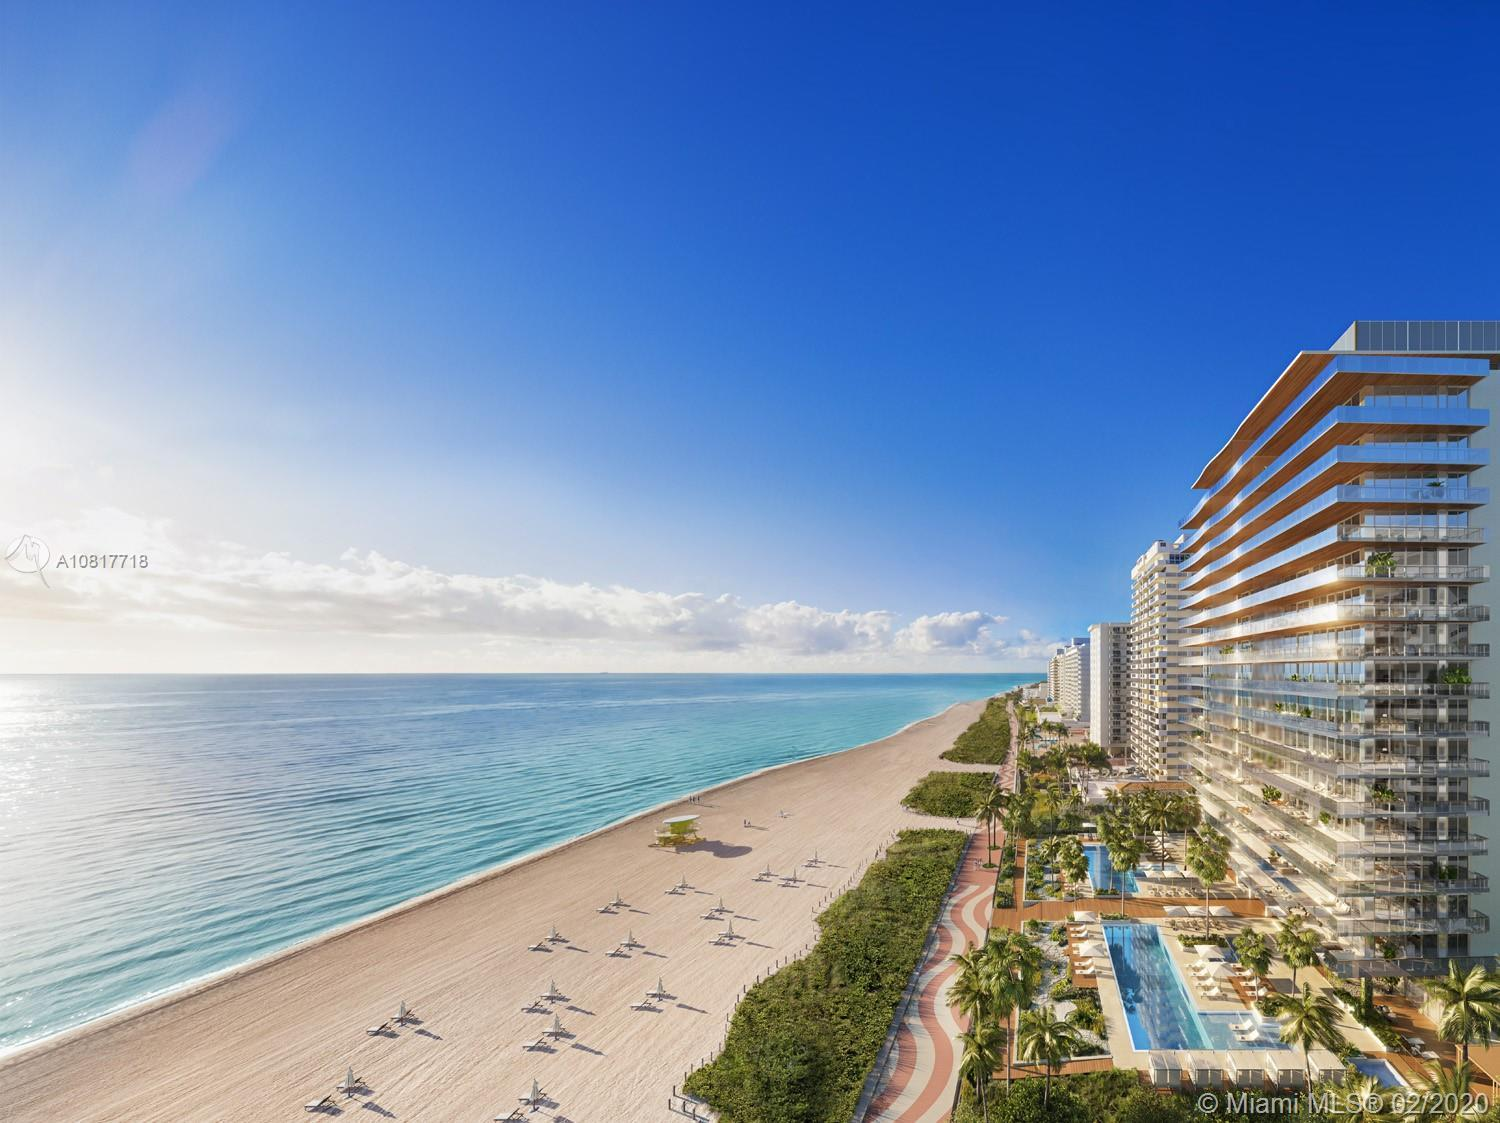 A haven for quality time and tranquility, 57 Ocean is comprised of 71 oceanfront residences that sha